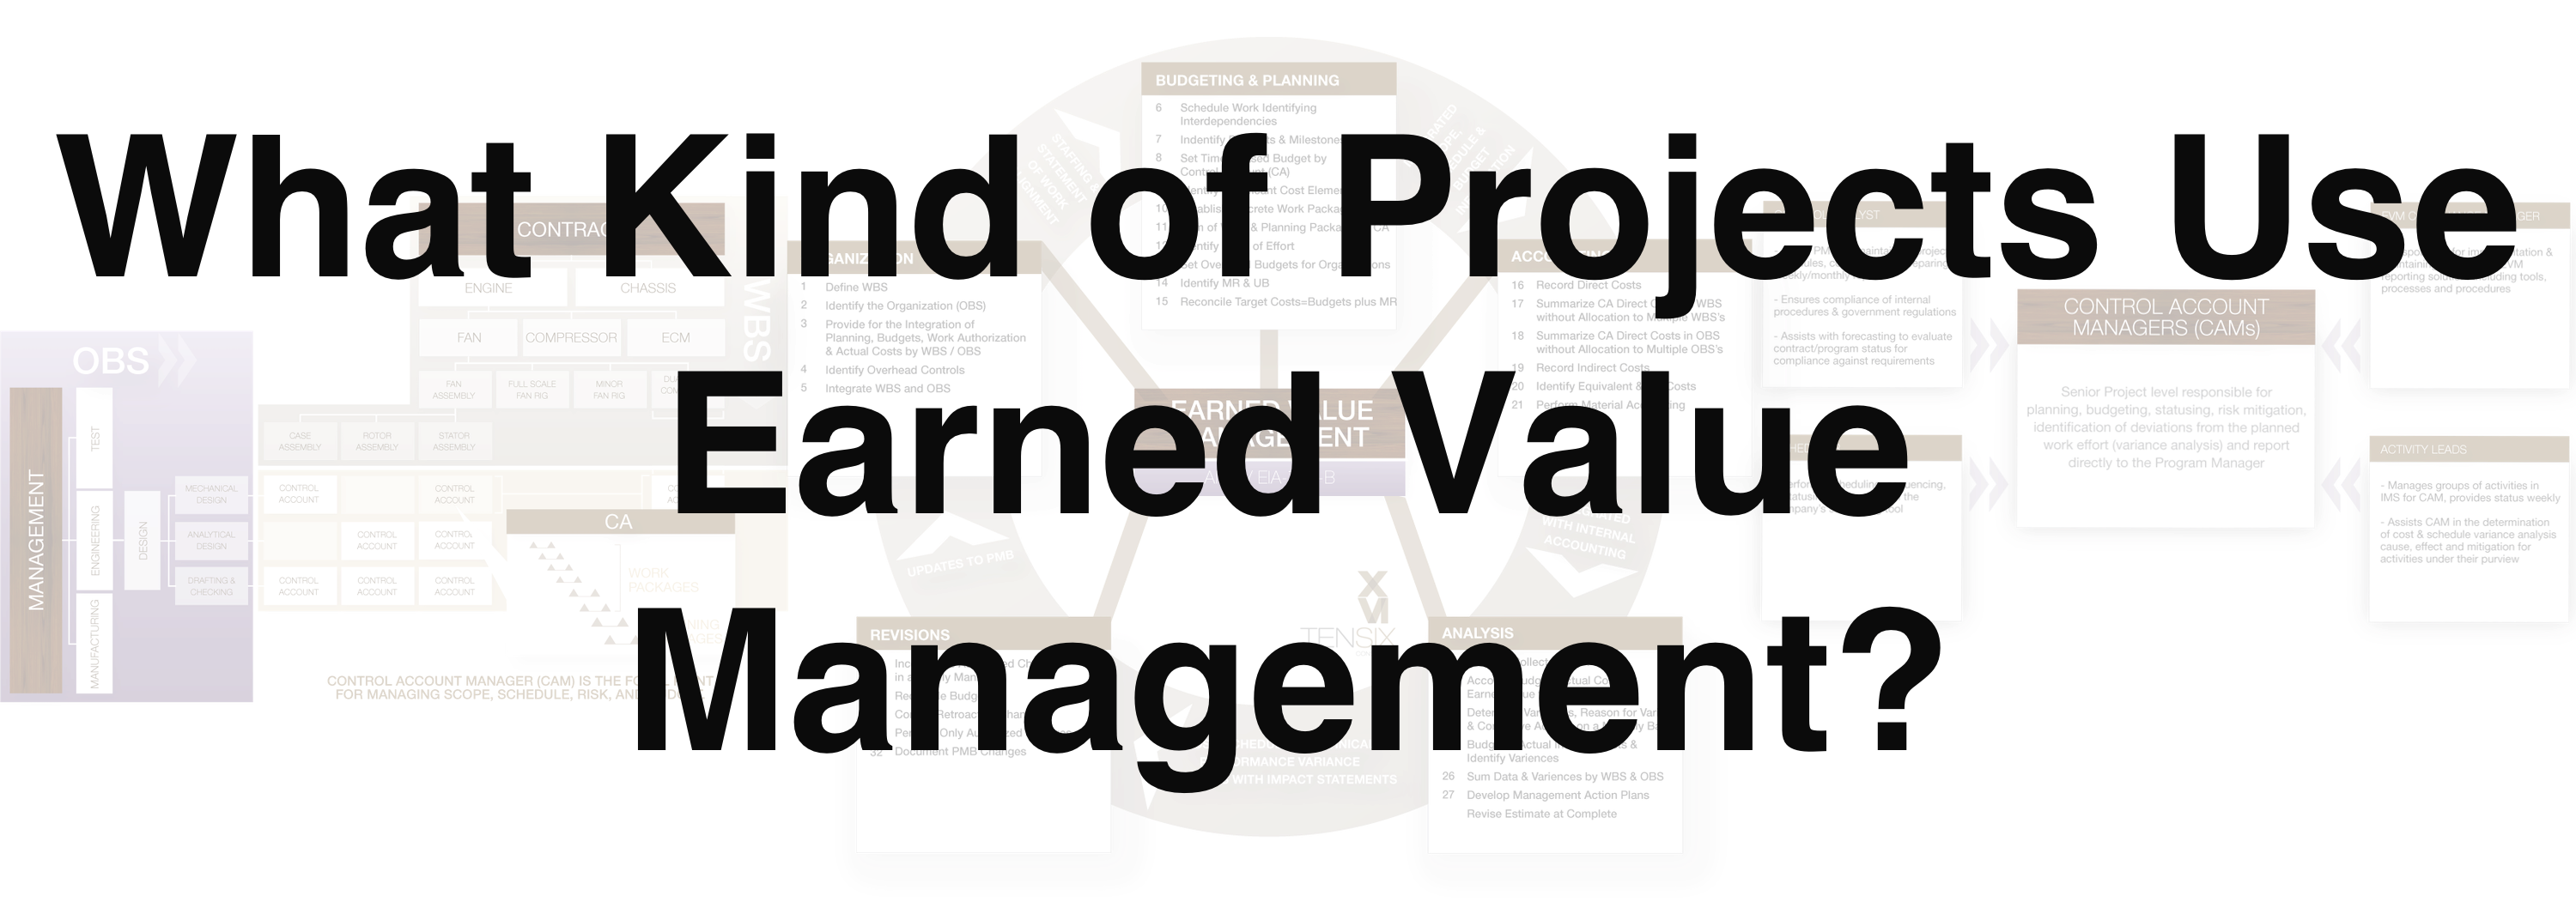 Projects Use Earned Value Management